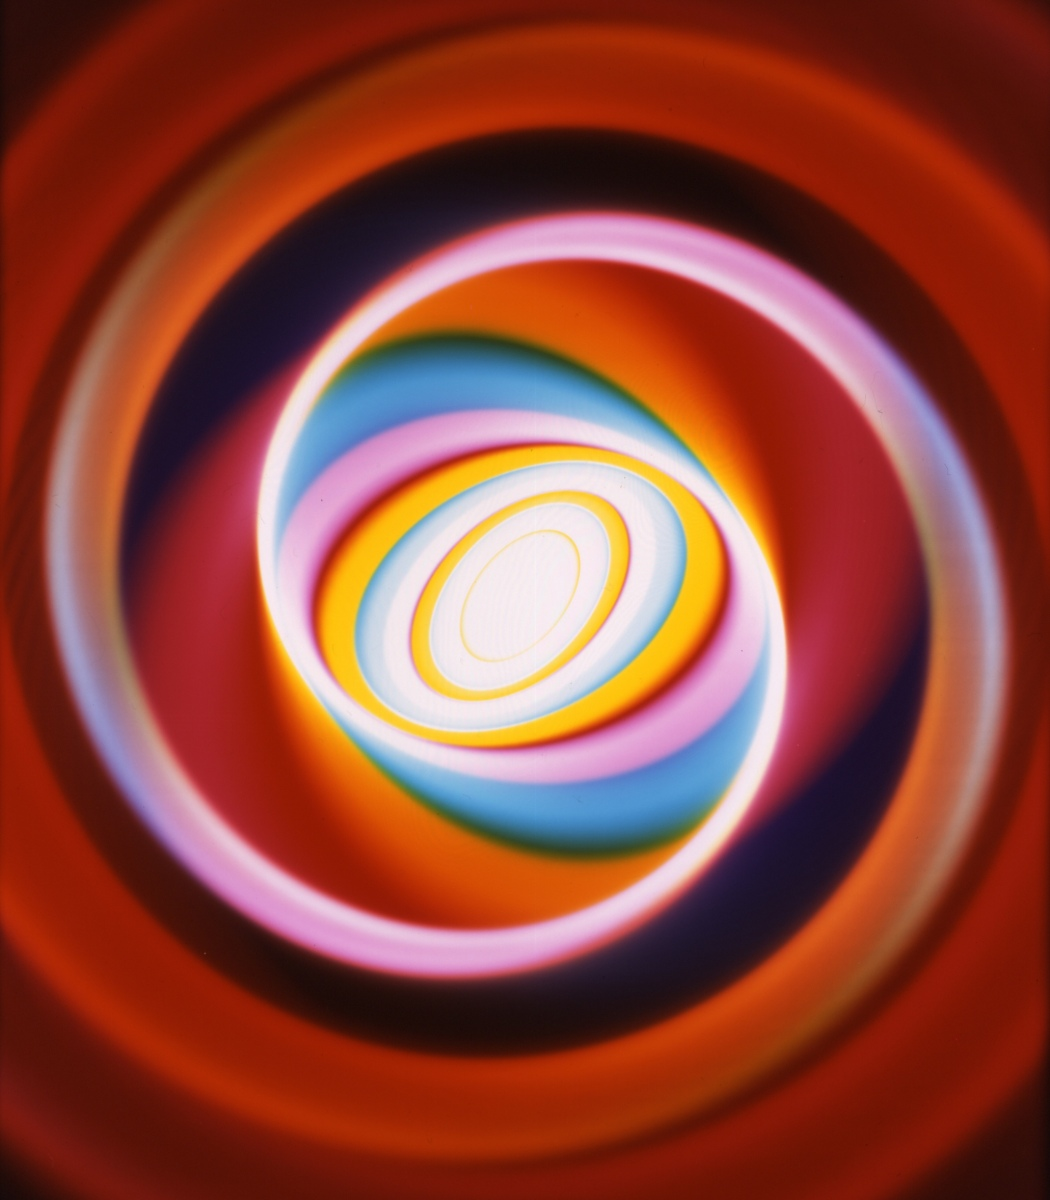 Rob and Nick Carter - RN383, Colour Changing Spiral XXIII, 2004 · © Copyright 2020